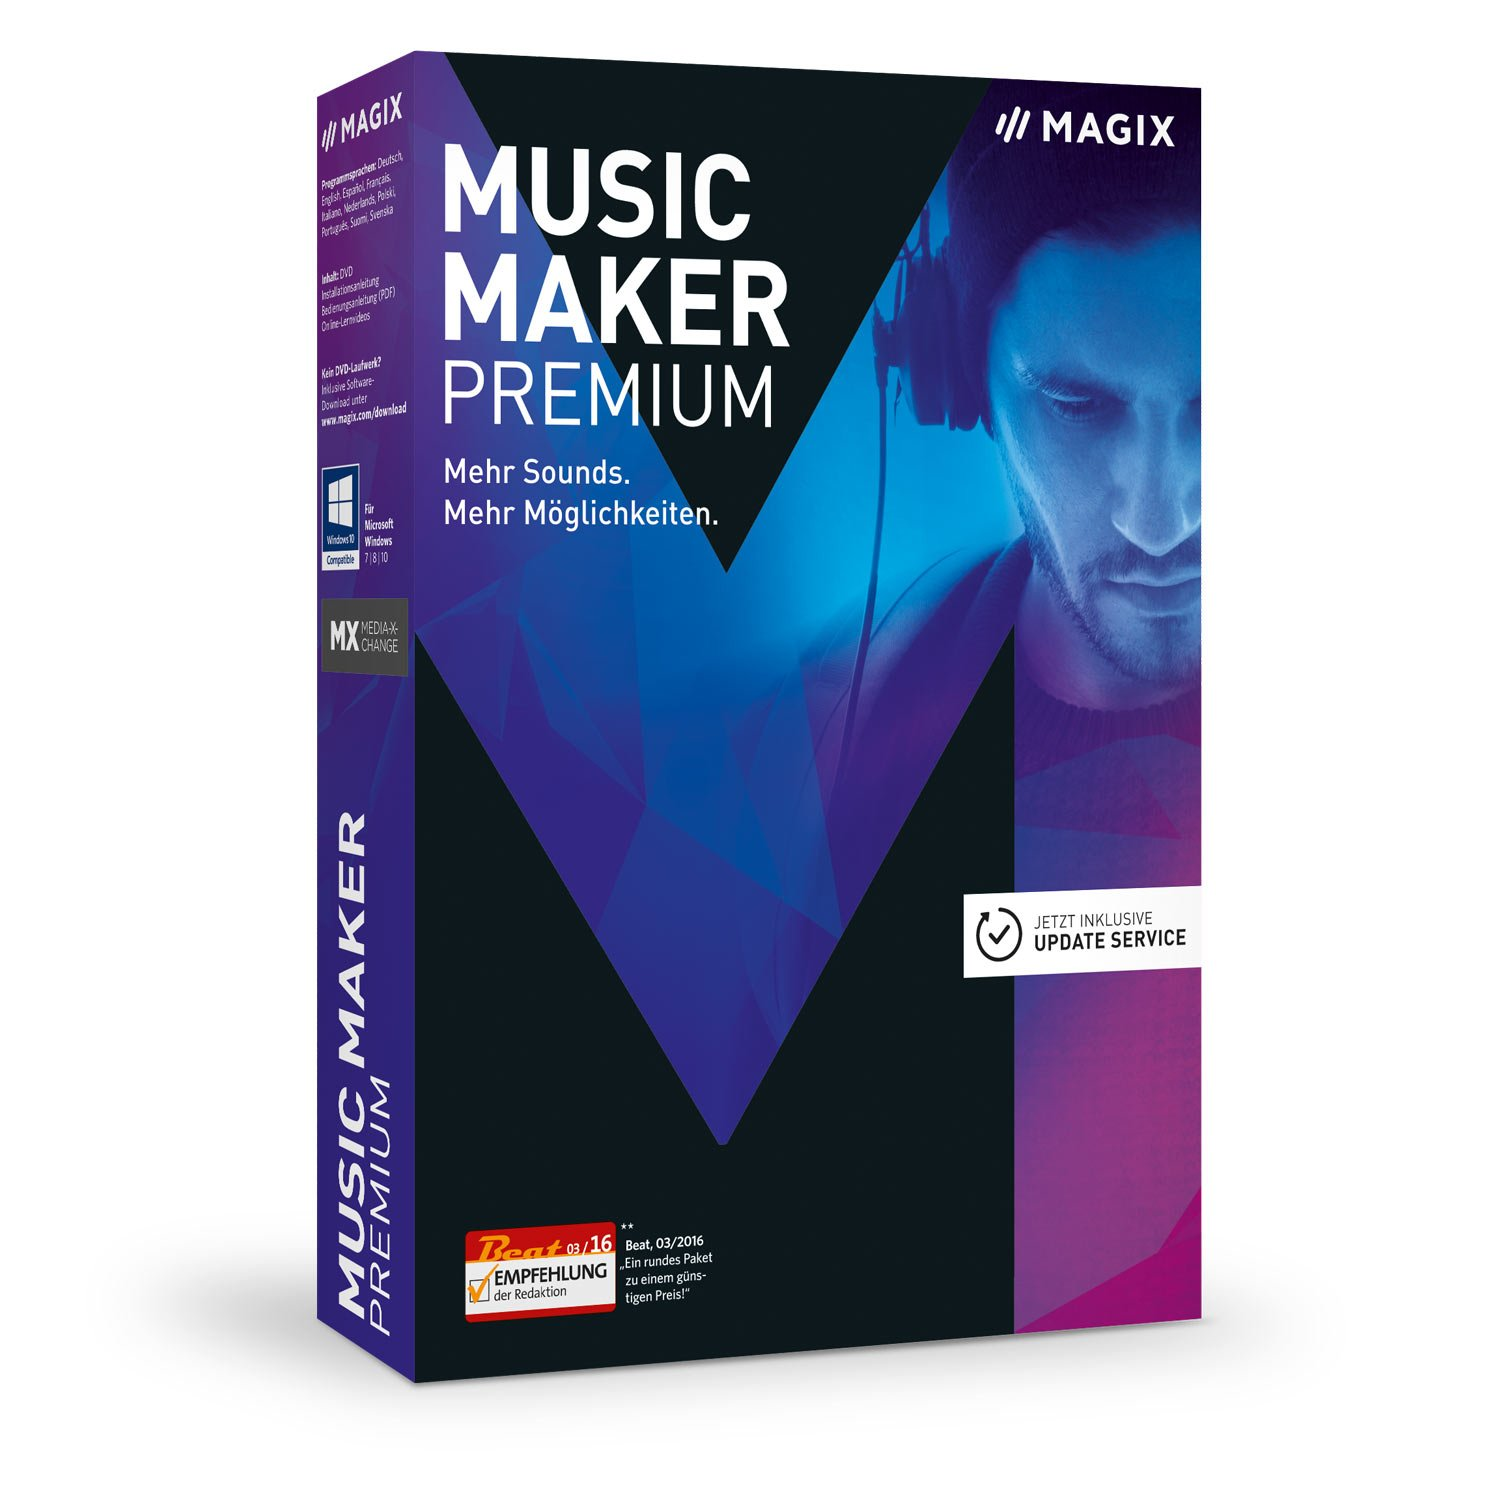 MAGIX Music Maker 2017 Premium Edition